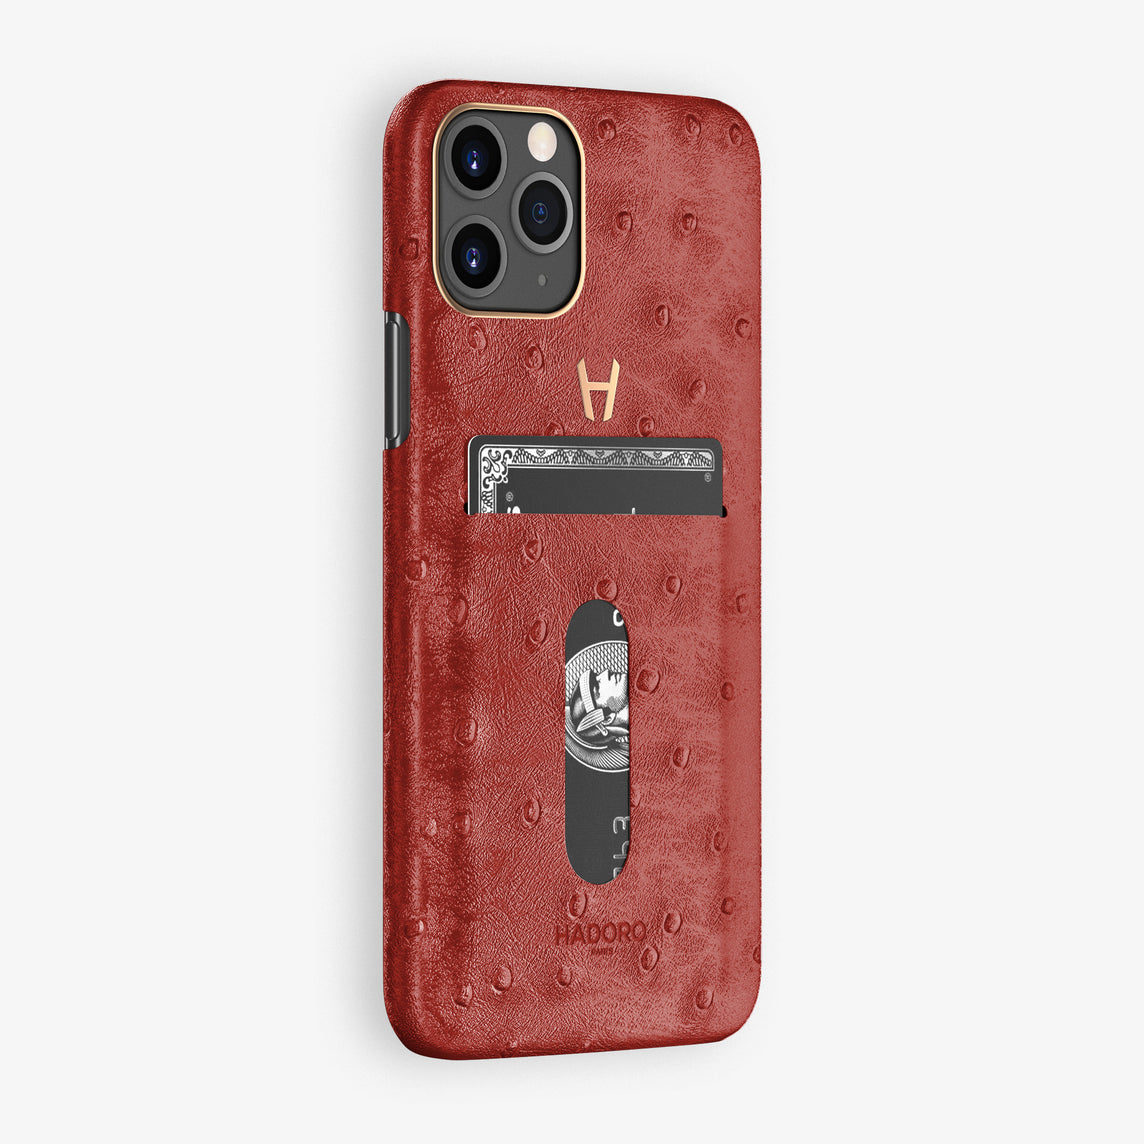 Ostrich Card Holder Case iPhone 11 Pro | Red - Rose Gold